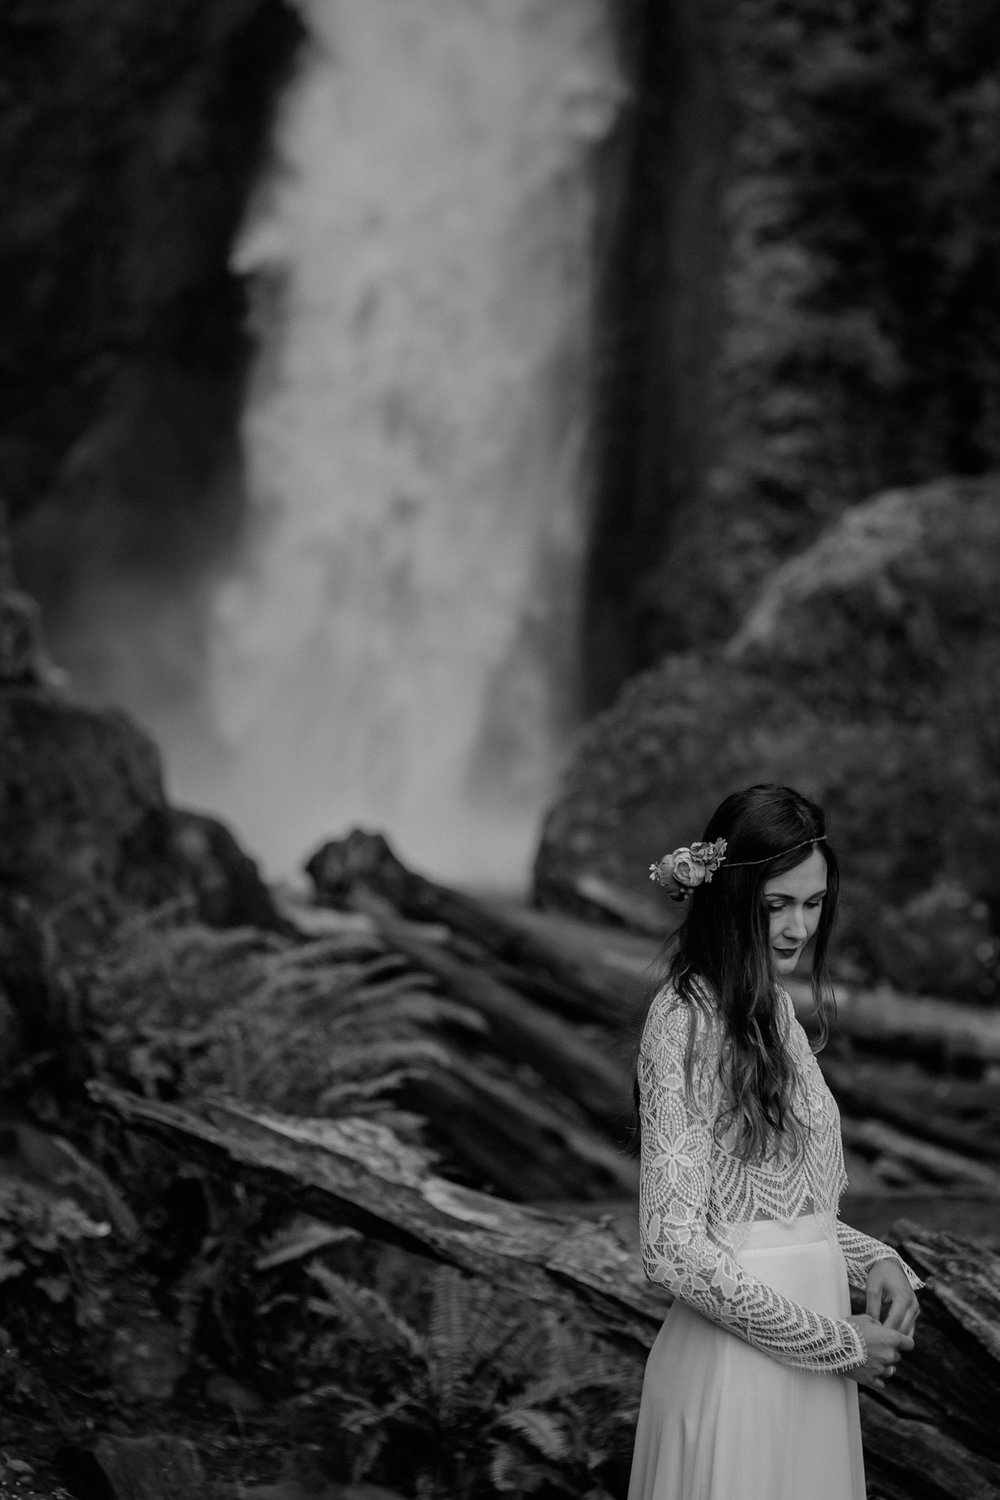 A bride portrait photo at Wahclella Falls